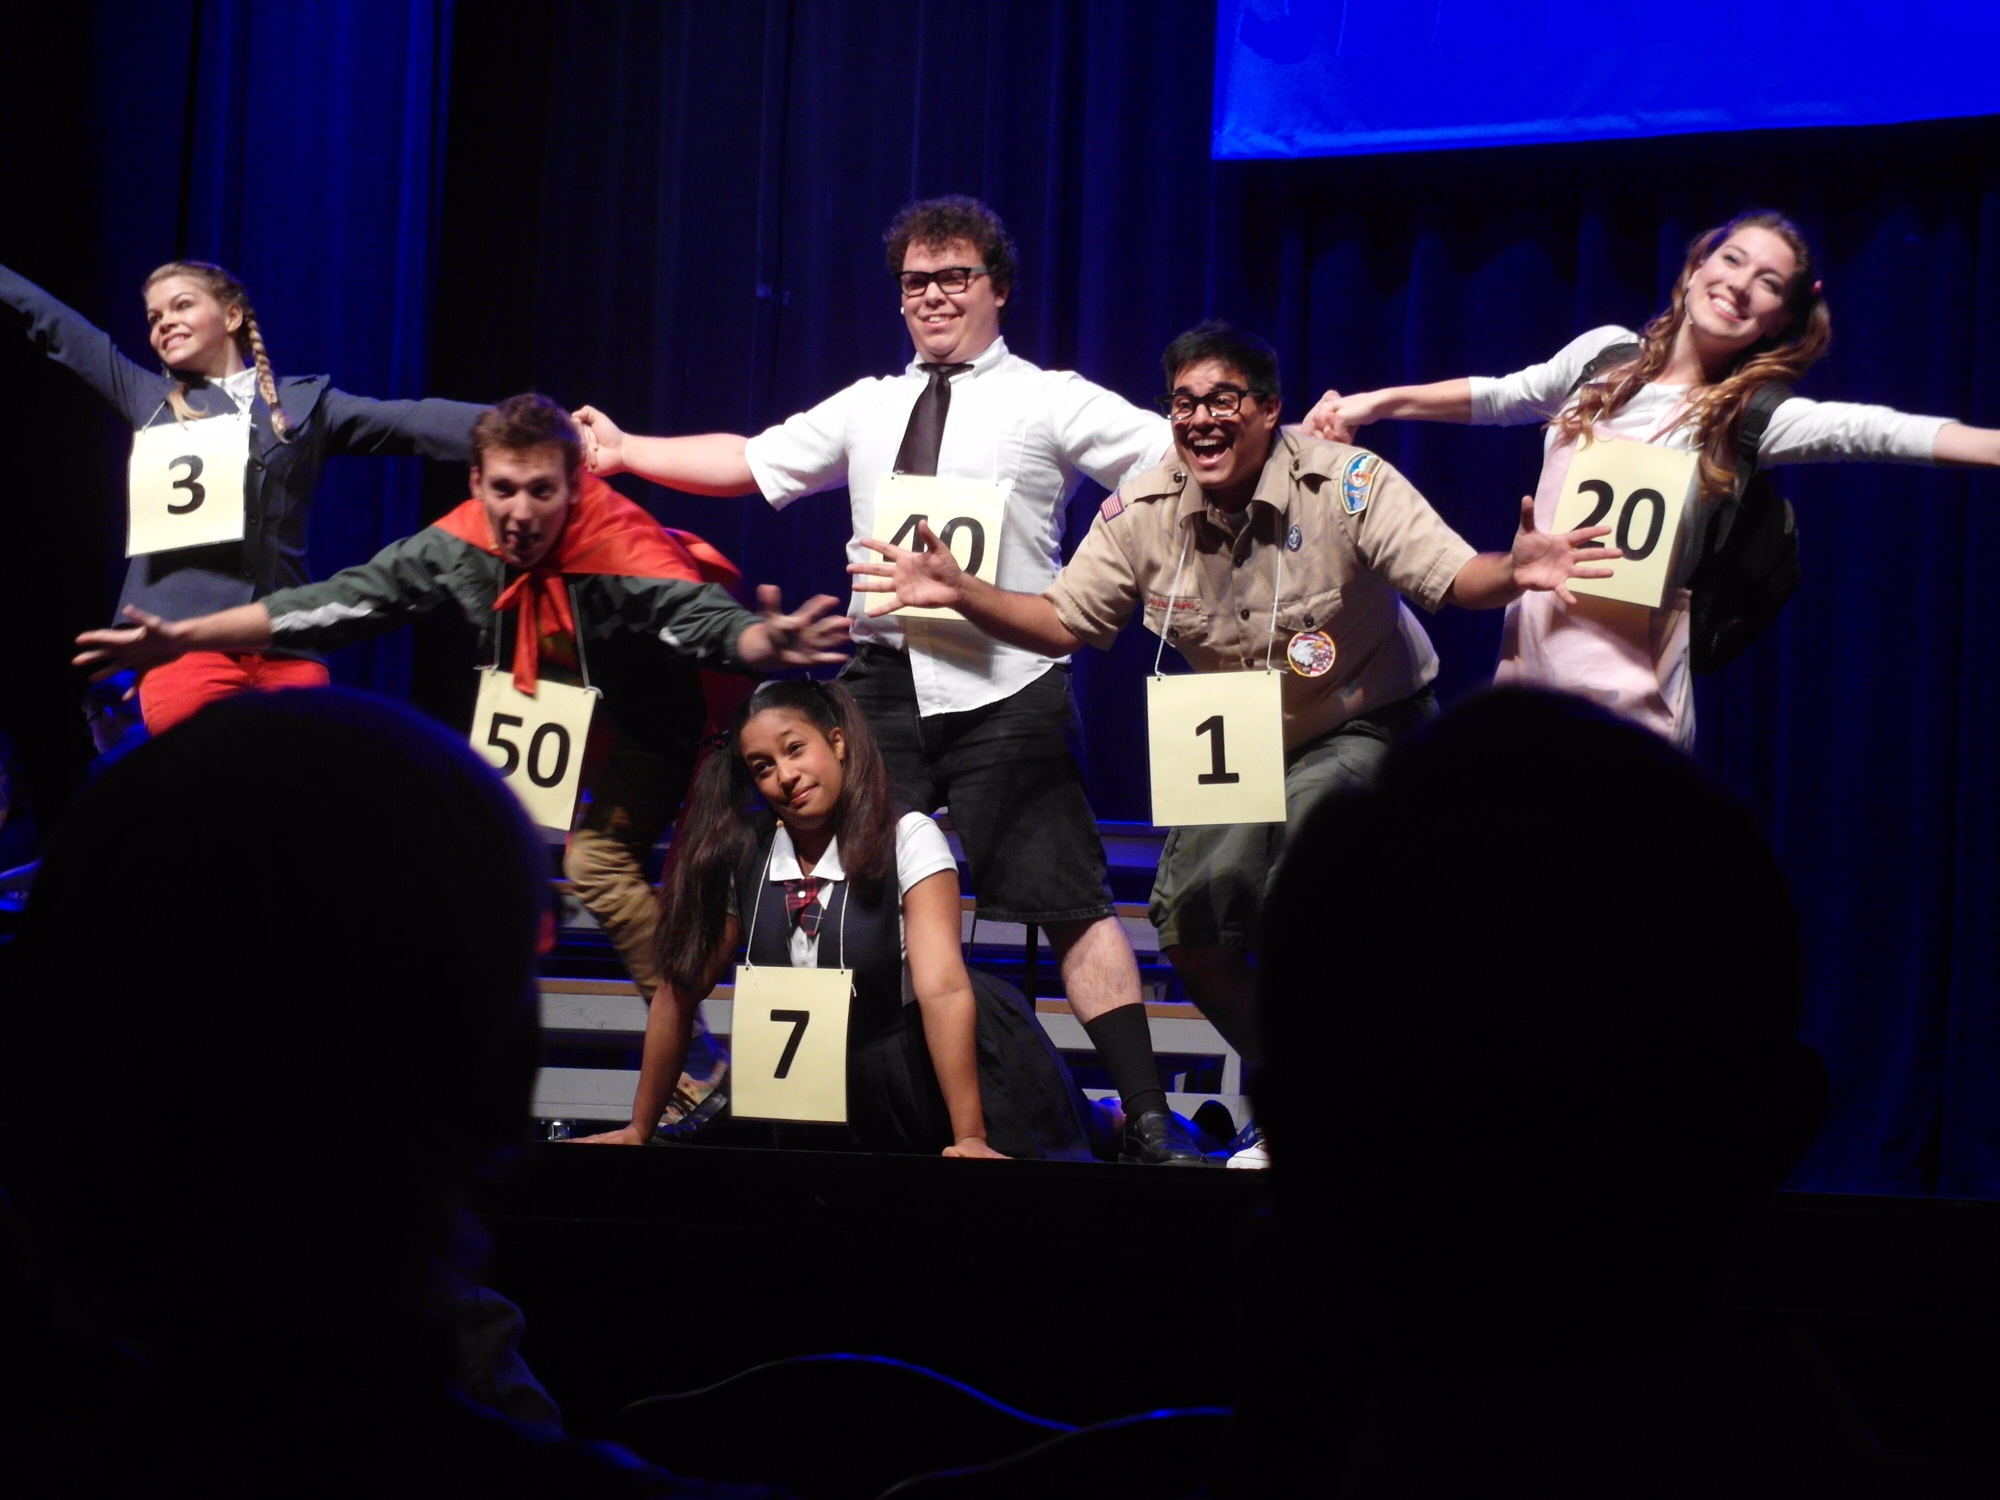 The 25th Annual Putnam County Spelling Bee at the Wayne Densch Performing Arts Center